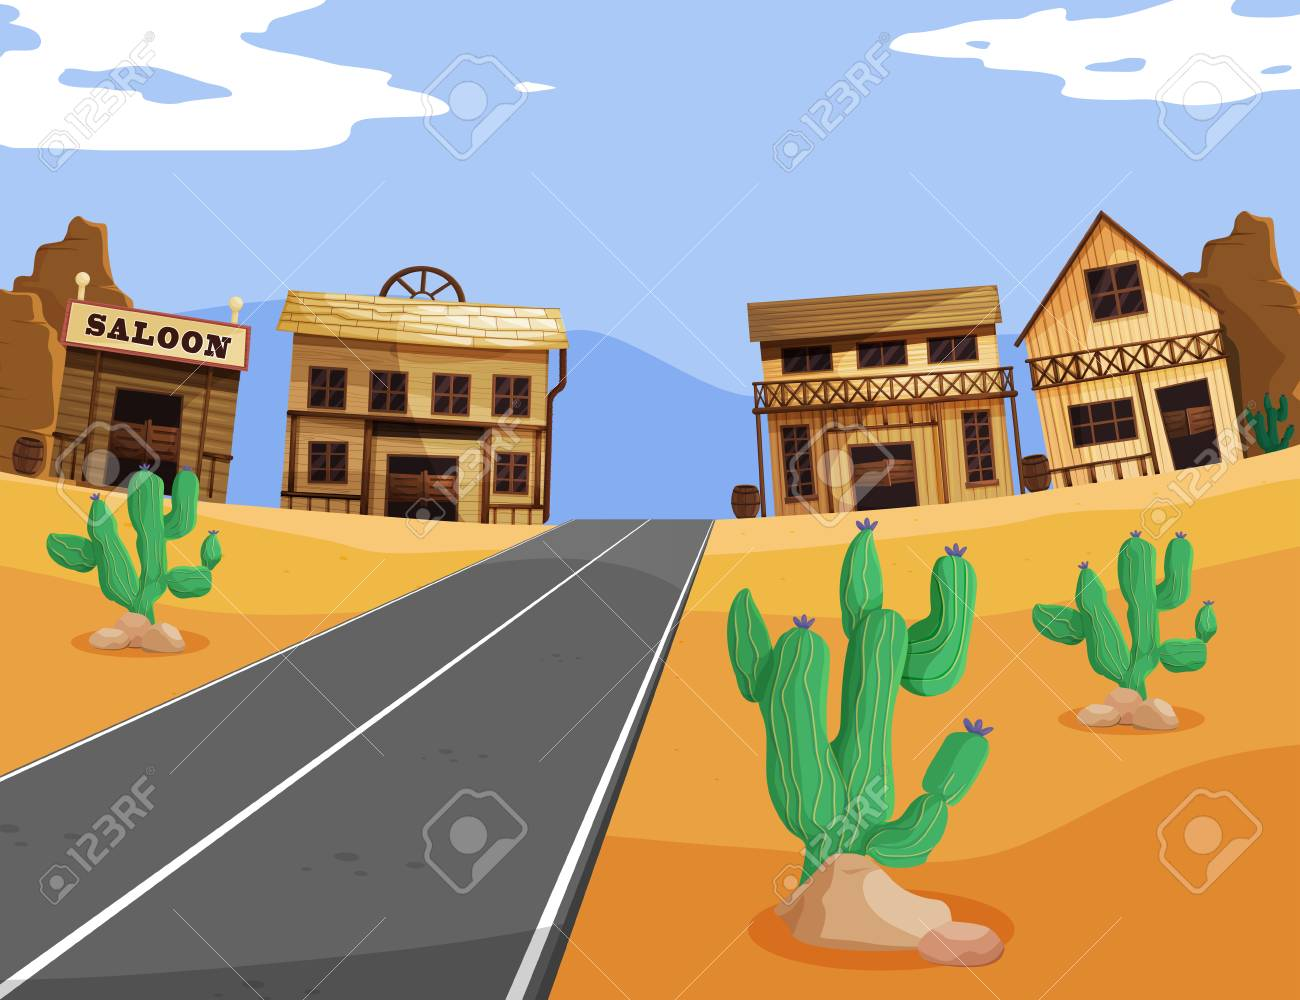 Western scene with buildings and road illustration.